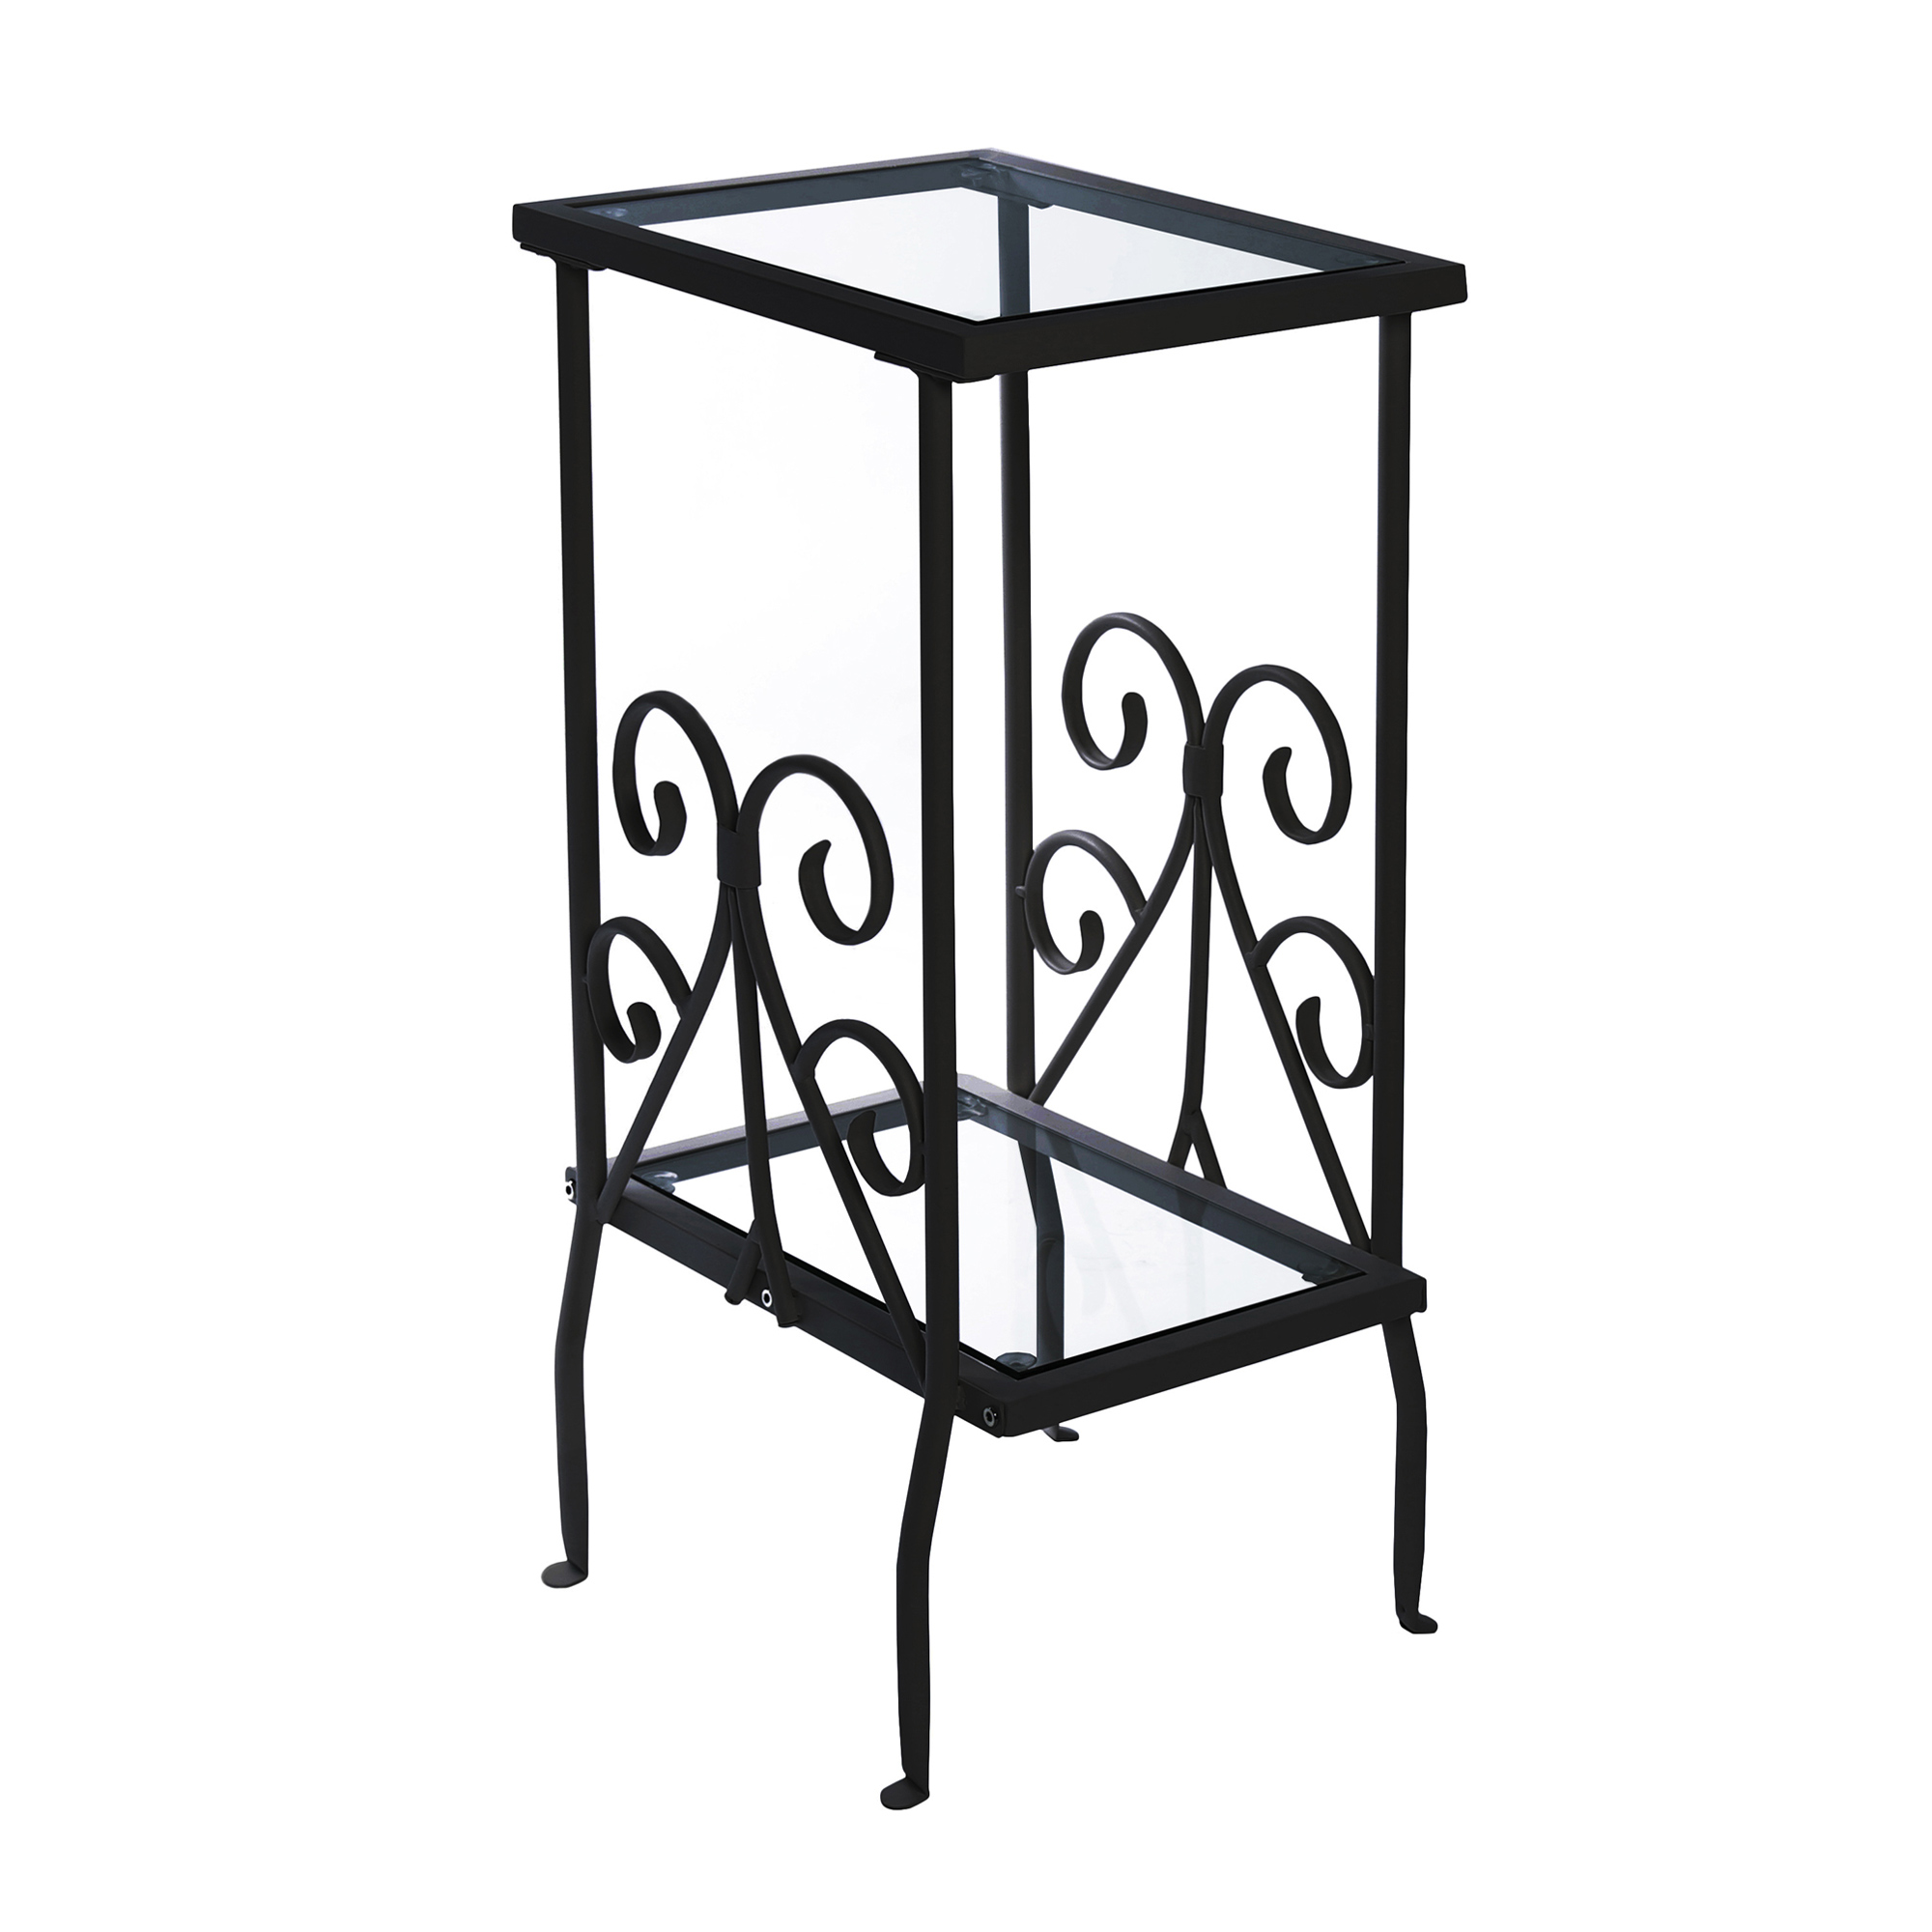 pia glass top accent table blackmetal side tablemodern black pub metal end tables narrow outdoor french beds target white and gold floor mirror oak dining dcuo occult location